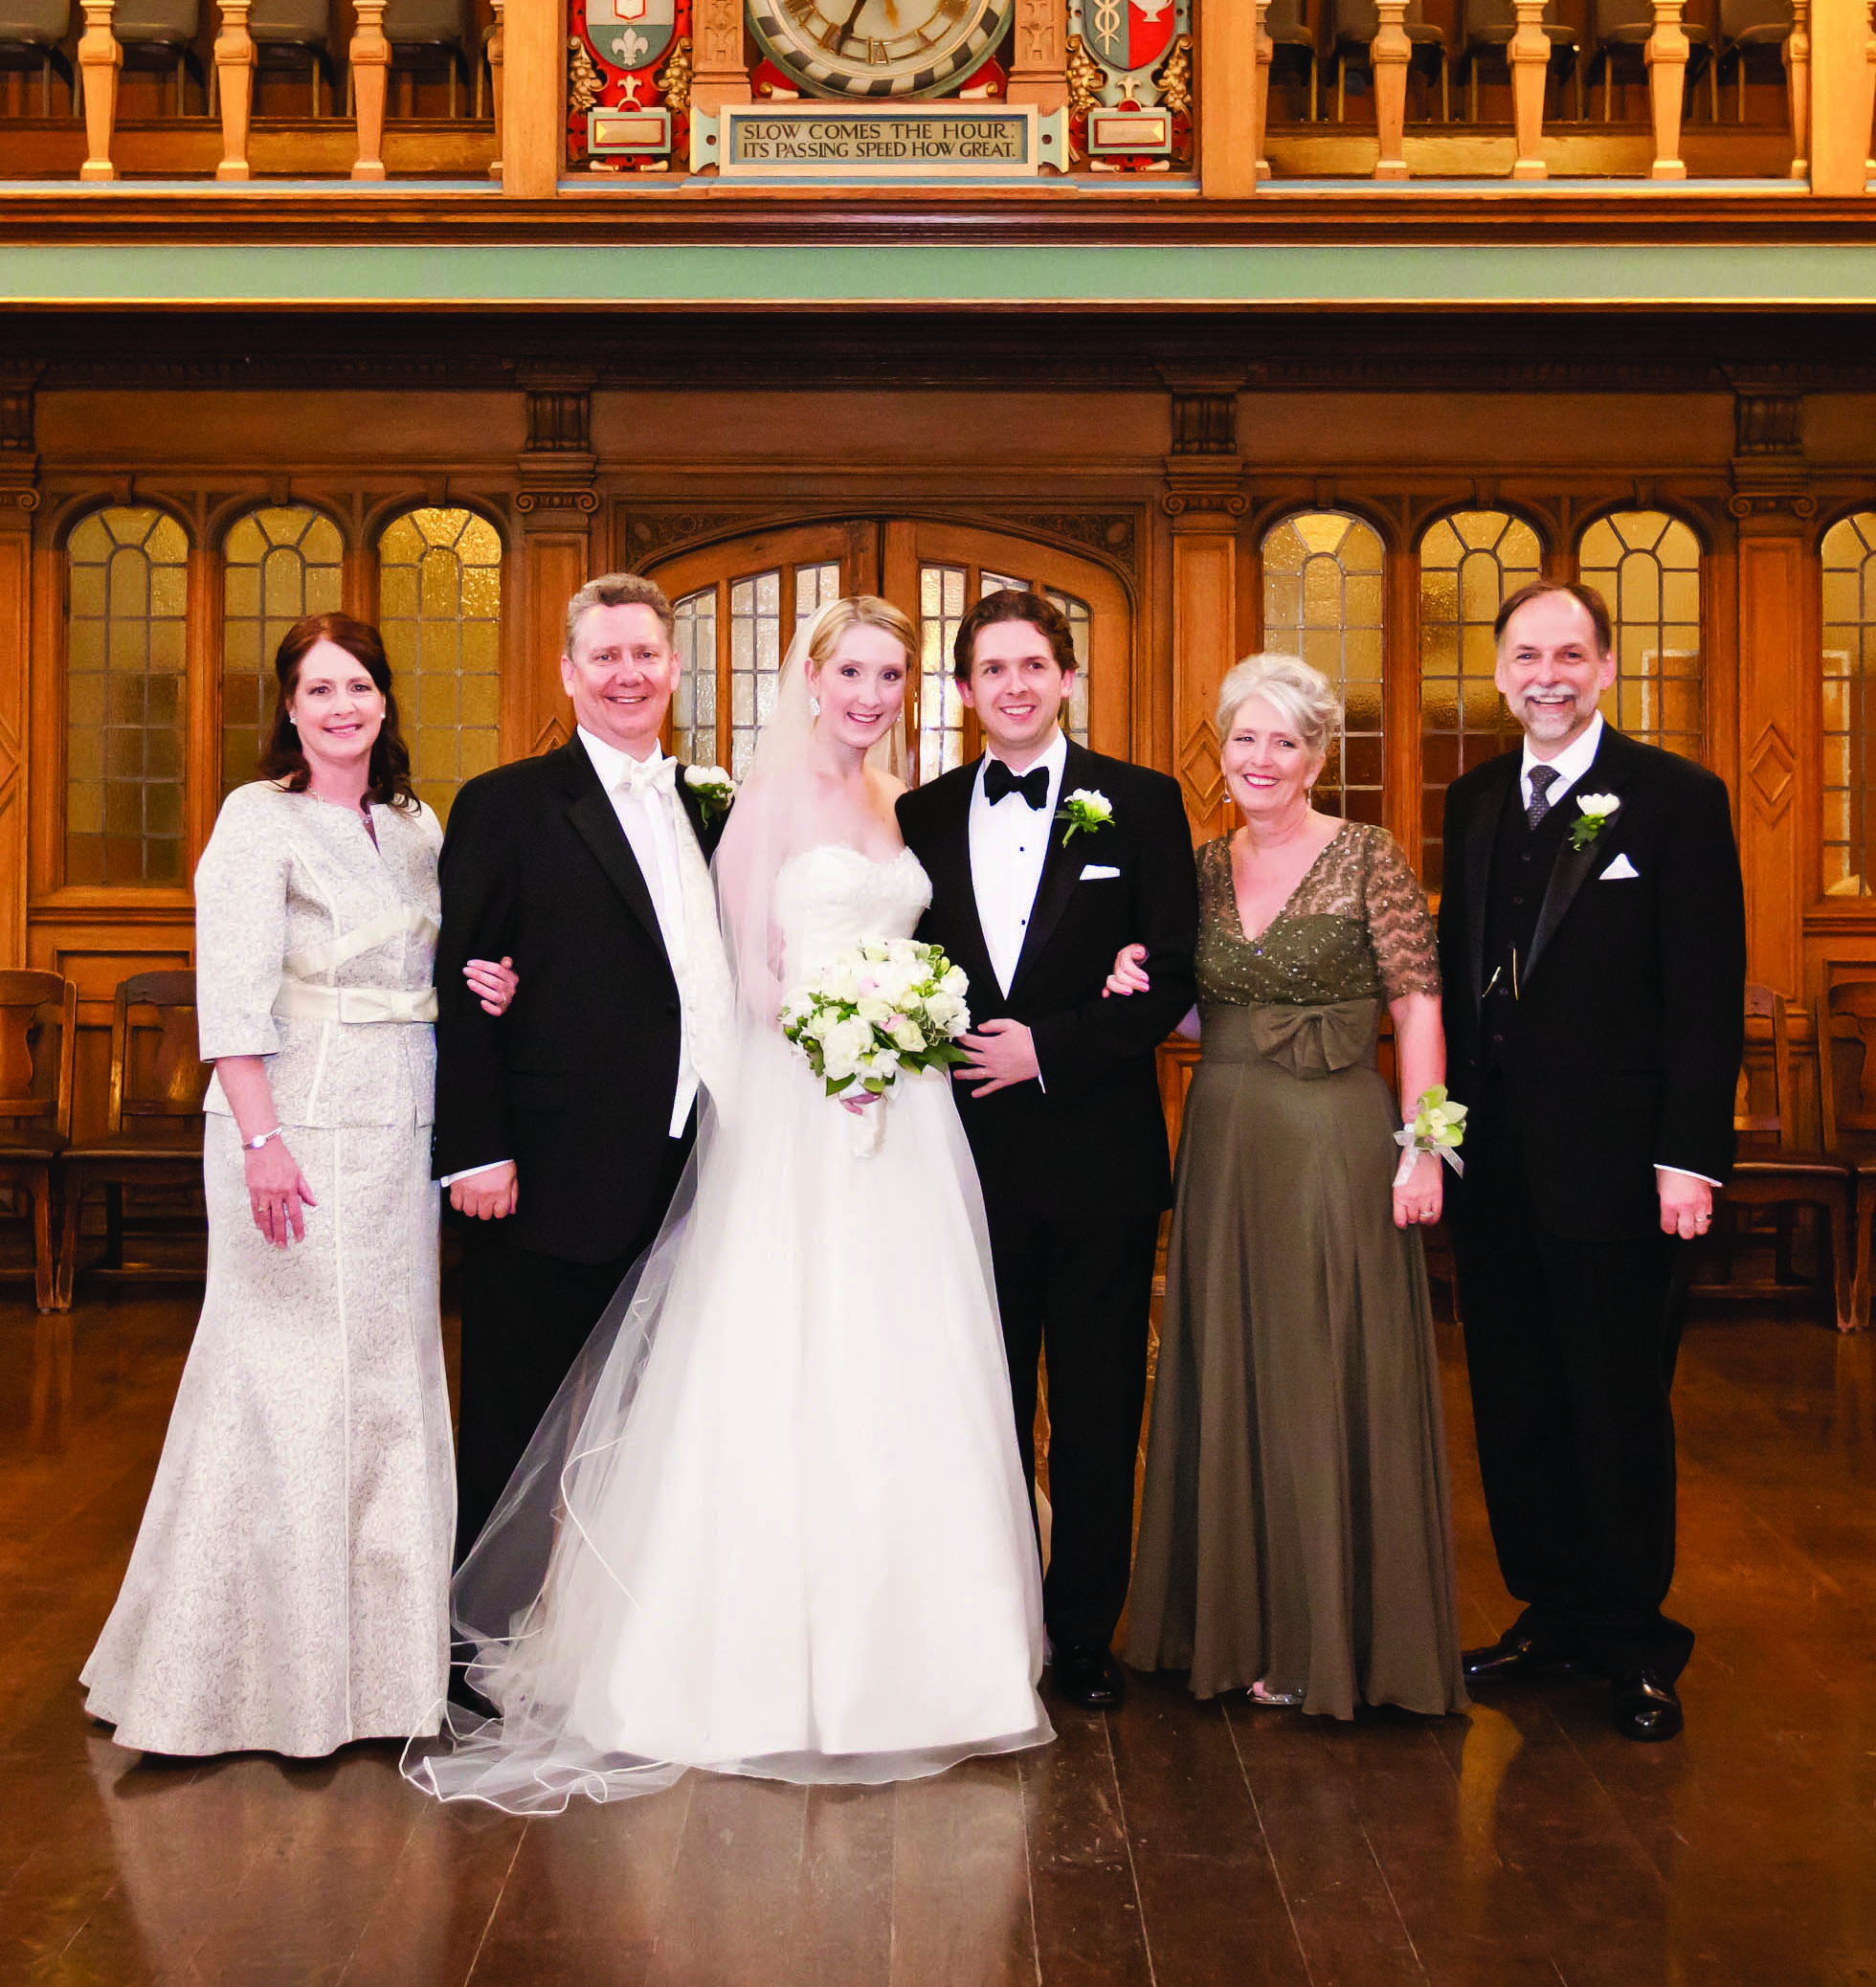 June 4, 2011: The wedding of Miranda Plant '08 and Todd Byers. Pictured, left to right: Patti Plant '76, David Plant '77, Miranda Plant '08, Todd Byers, Dorothy (Todd) Byers '77, Ted Byers '79